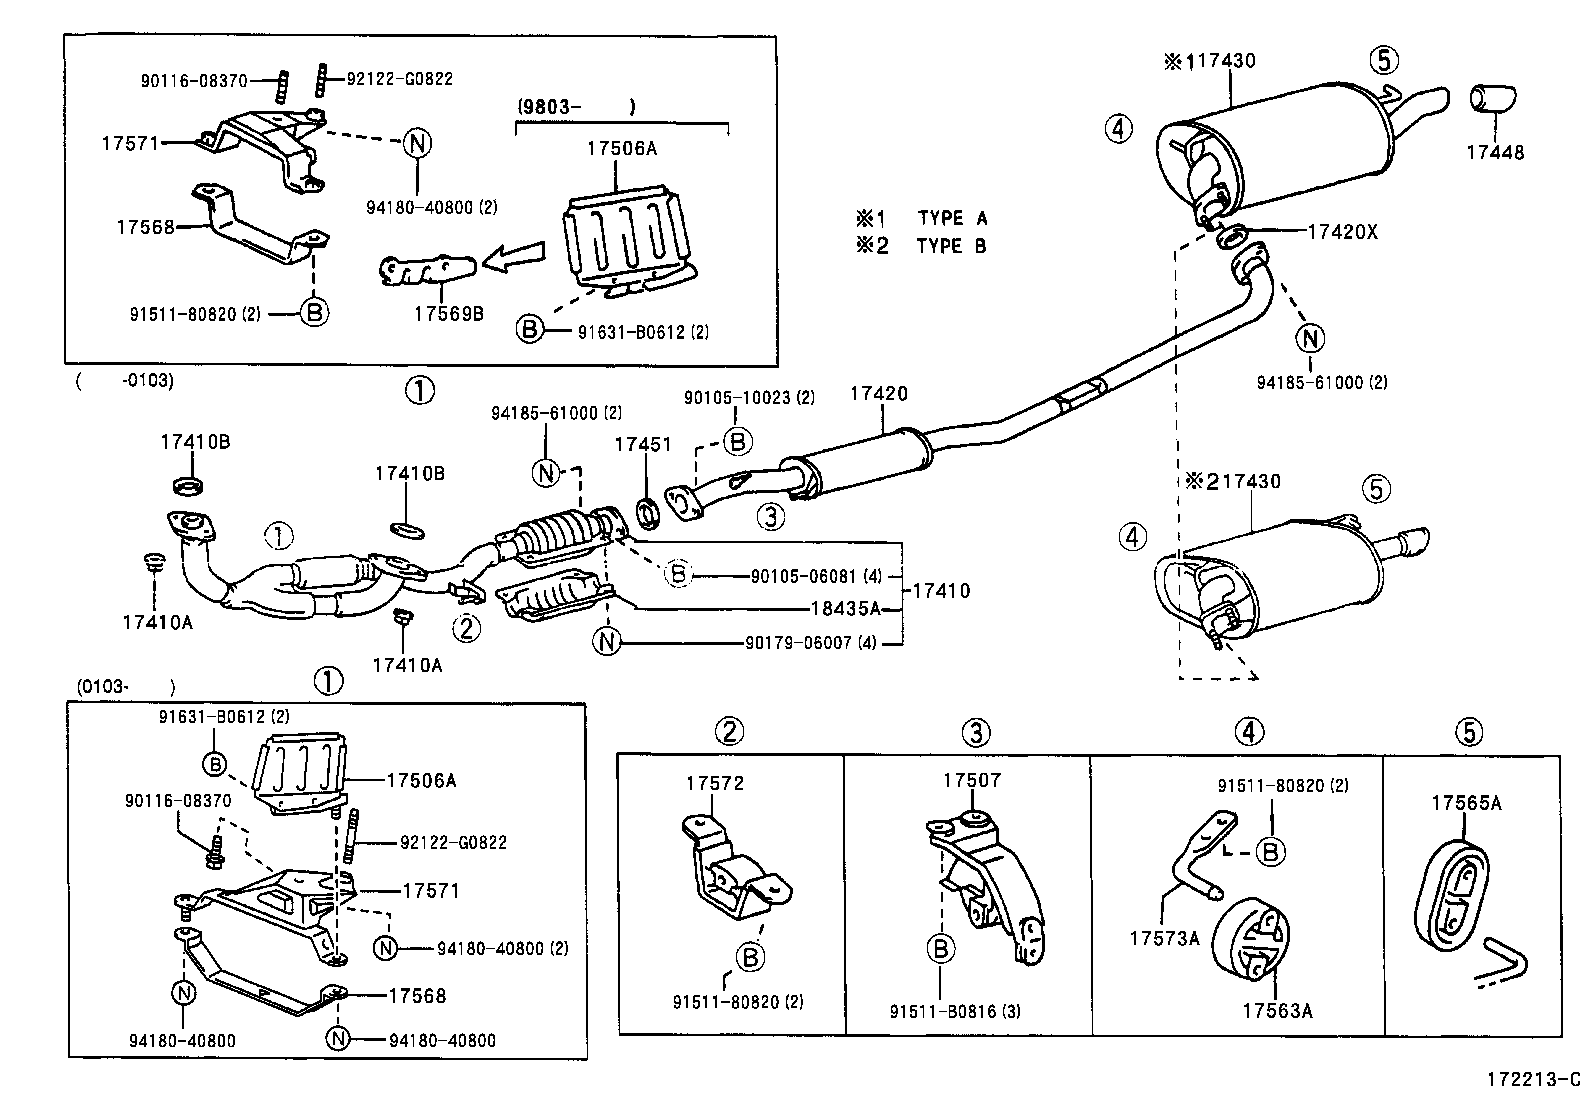 1999 toyota camry exhaust system diagram celica wiring 1993 2011 introduction to